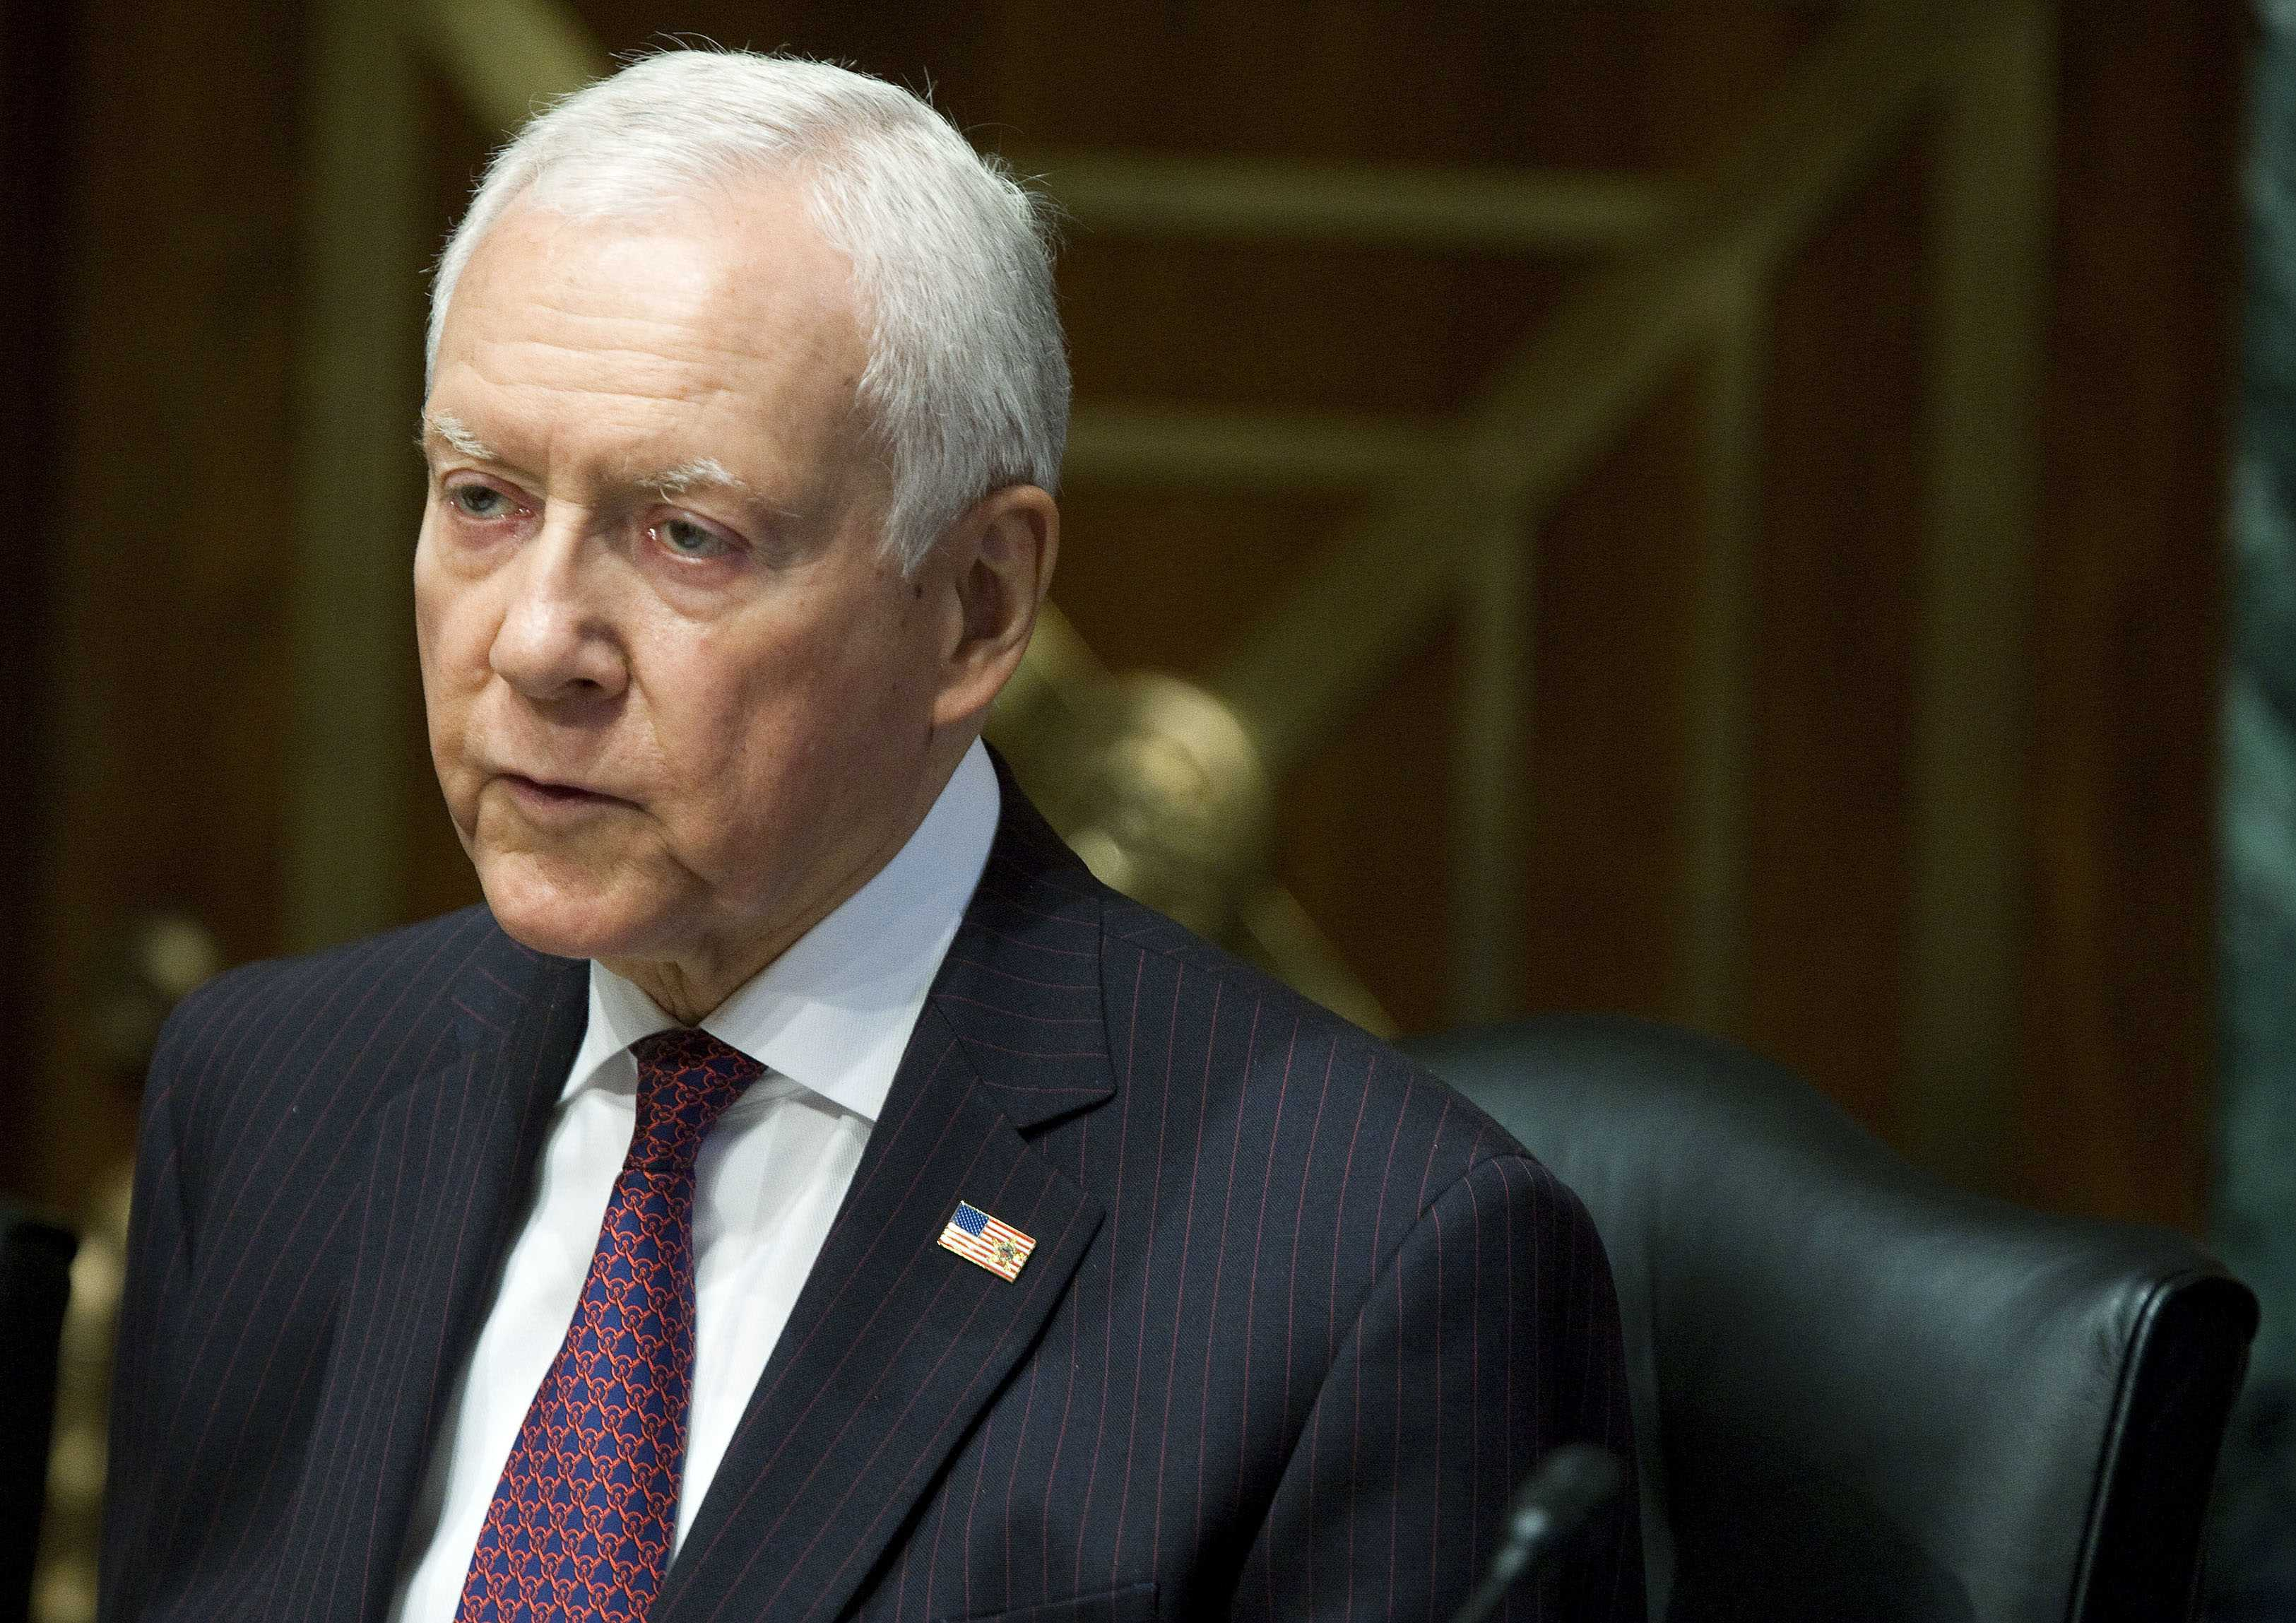 Sen. Hatch preparing public pension reform bill